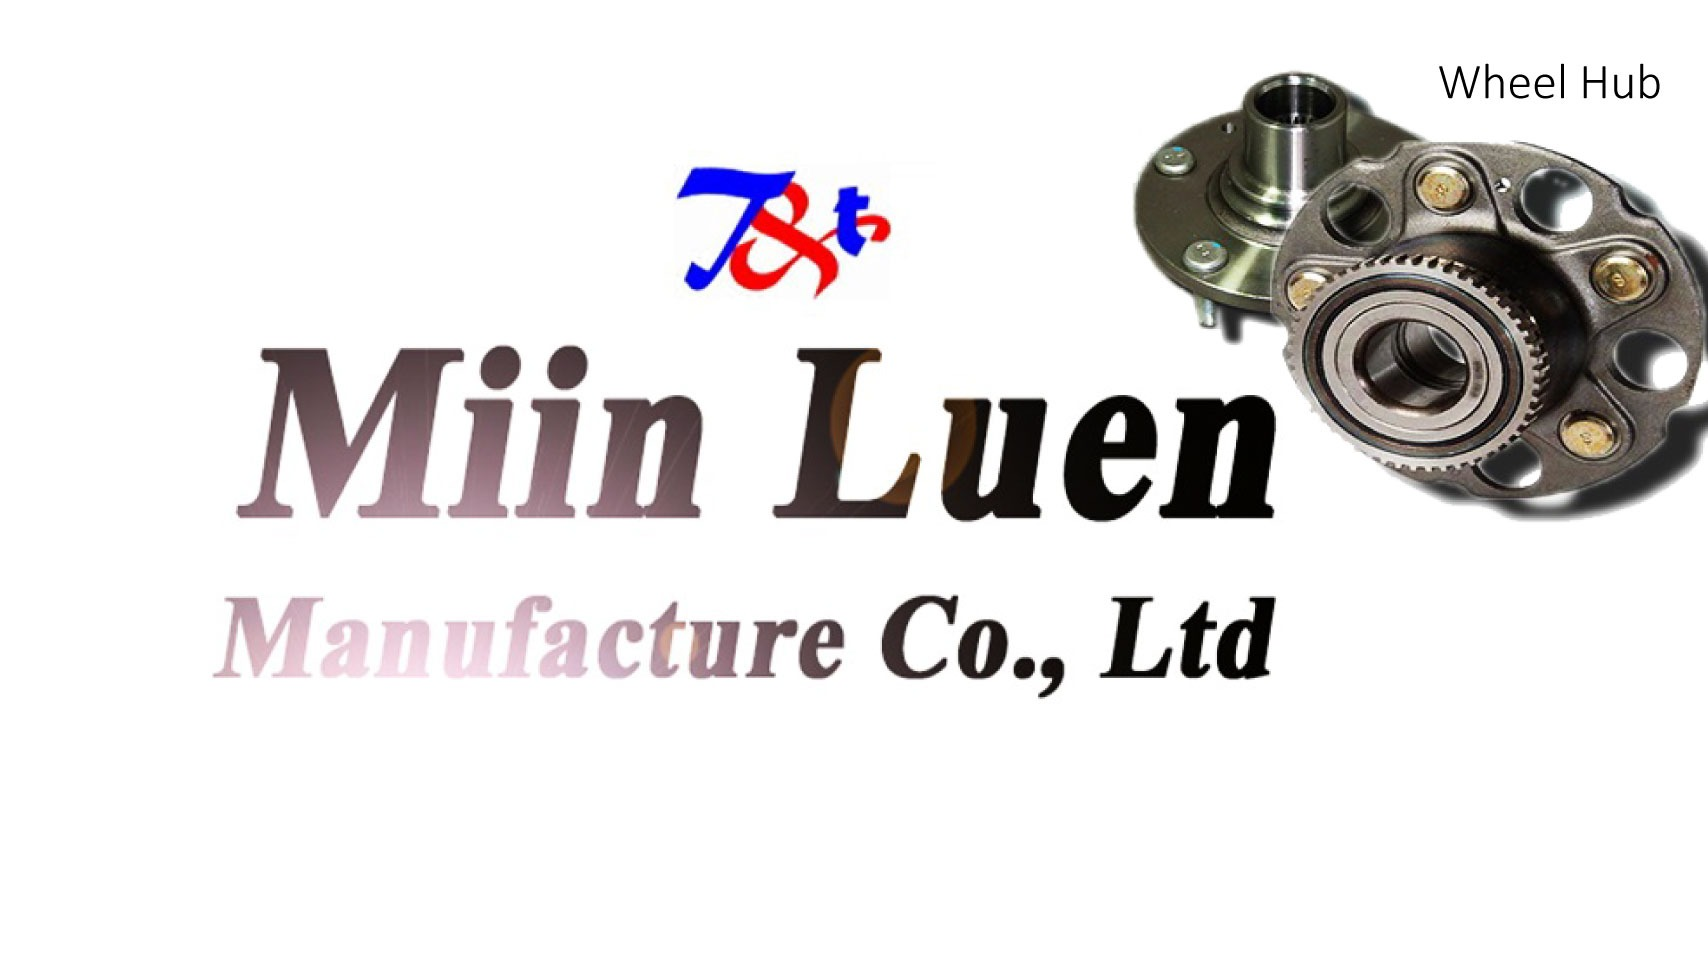 MIIN LUEN MANUFACTURE CO., LTD. 銘崙企業有限公司 - Match Supplier